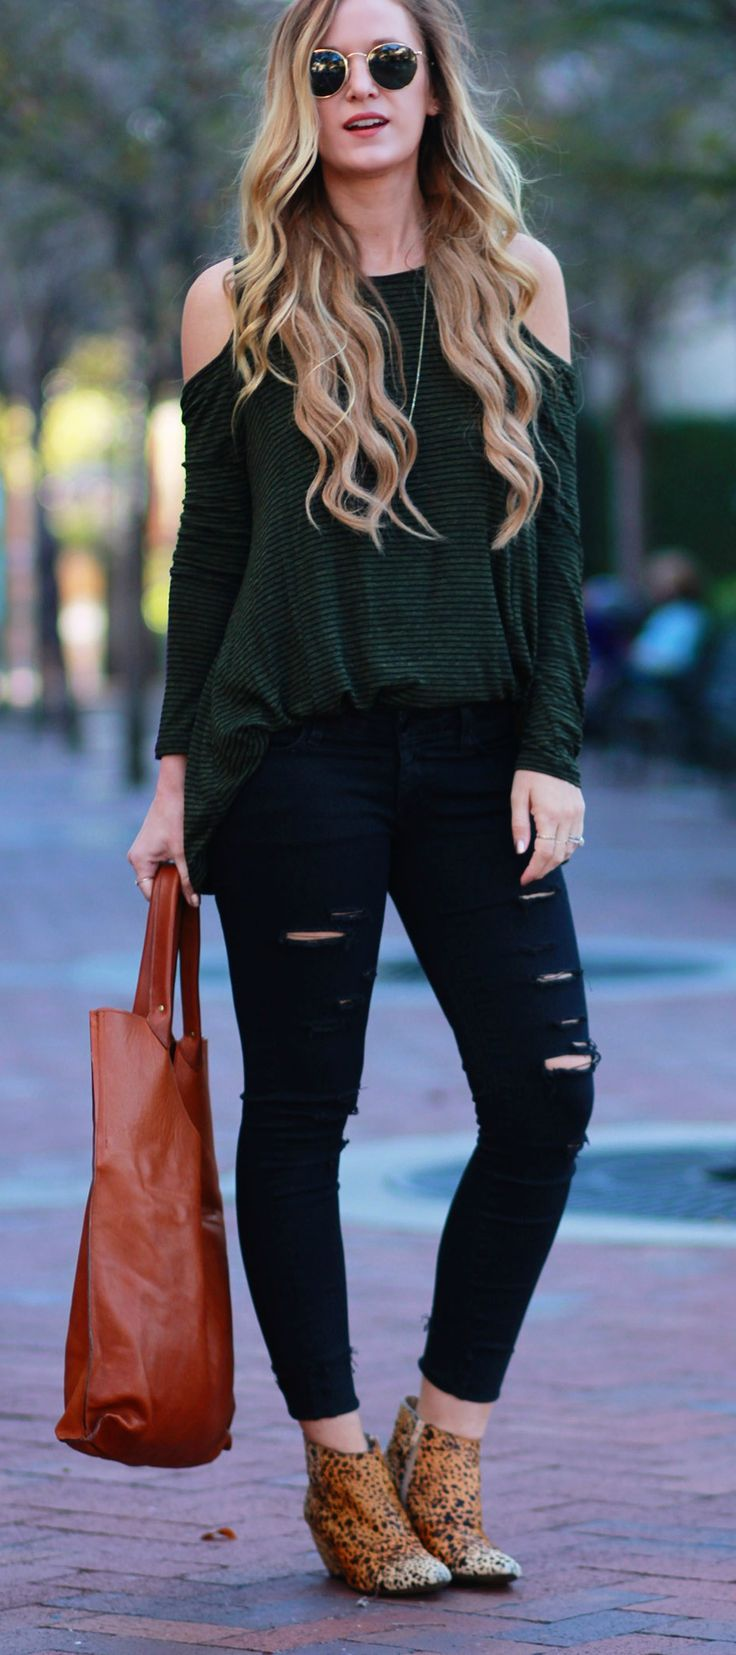 Casual fall outfit styled with open shoulder striped top, black distressed jeans, Matisse leopard booties, and leather tote